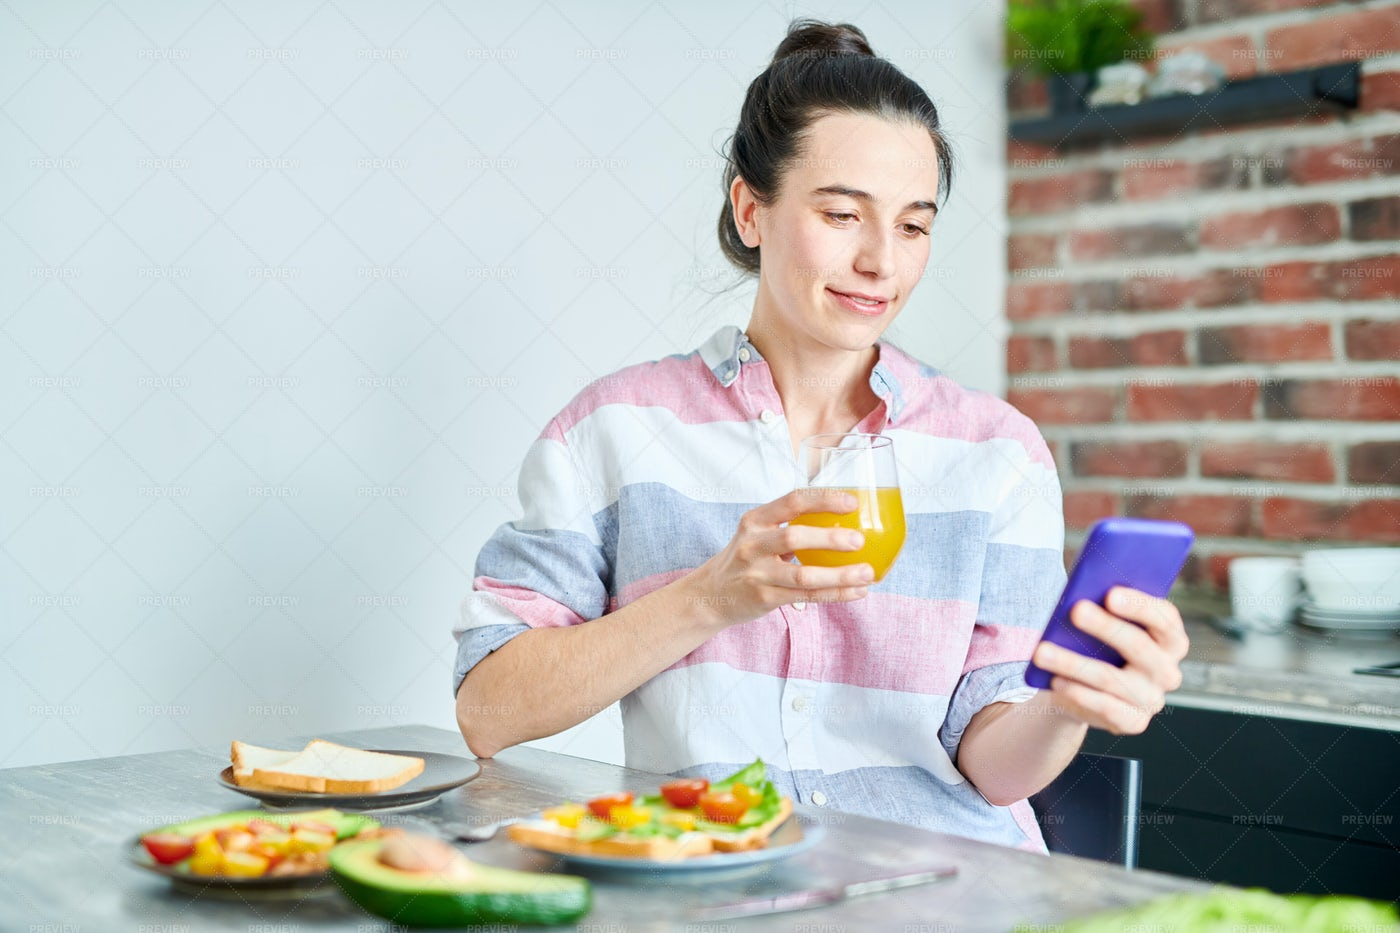 Woman Using Smartphone At Breakfast: Stock Photos